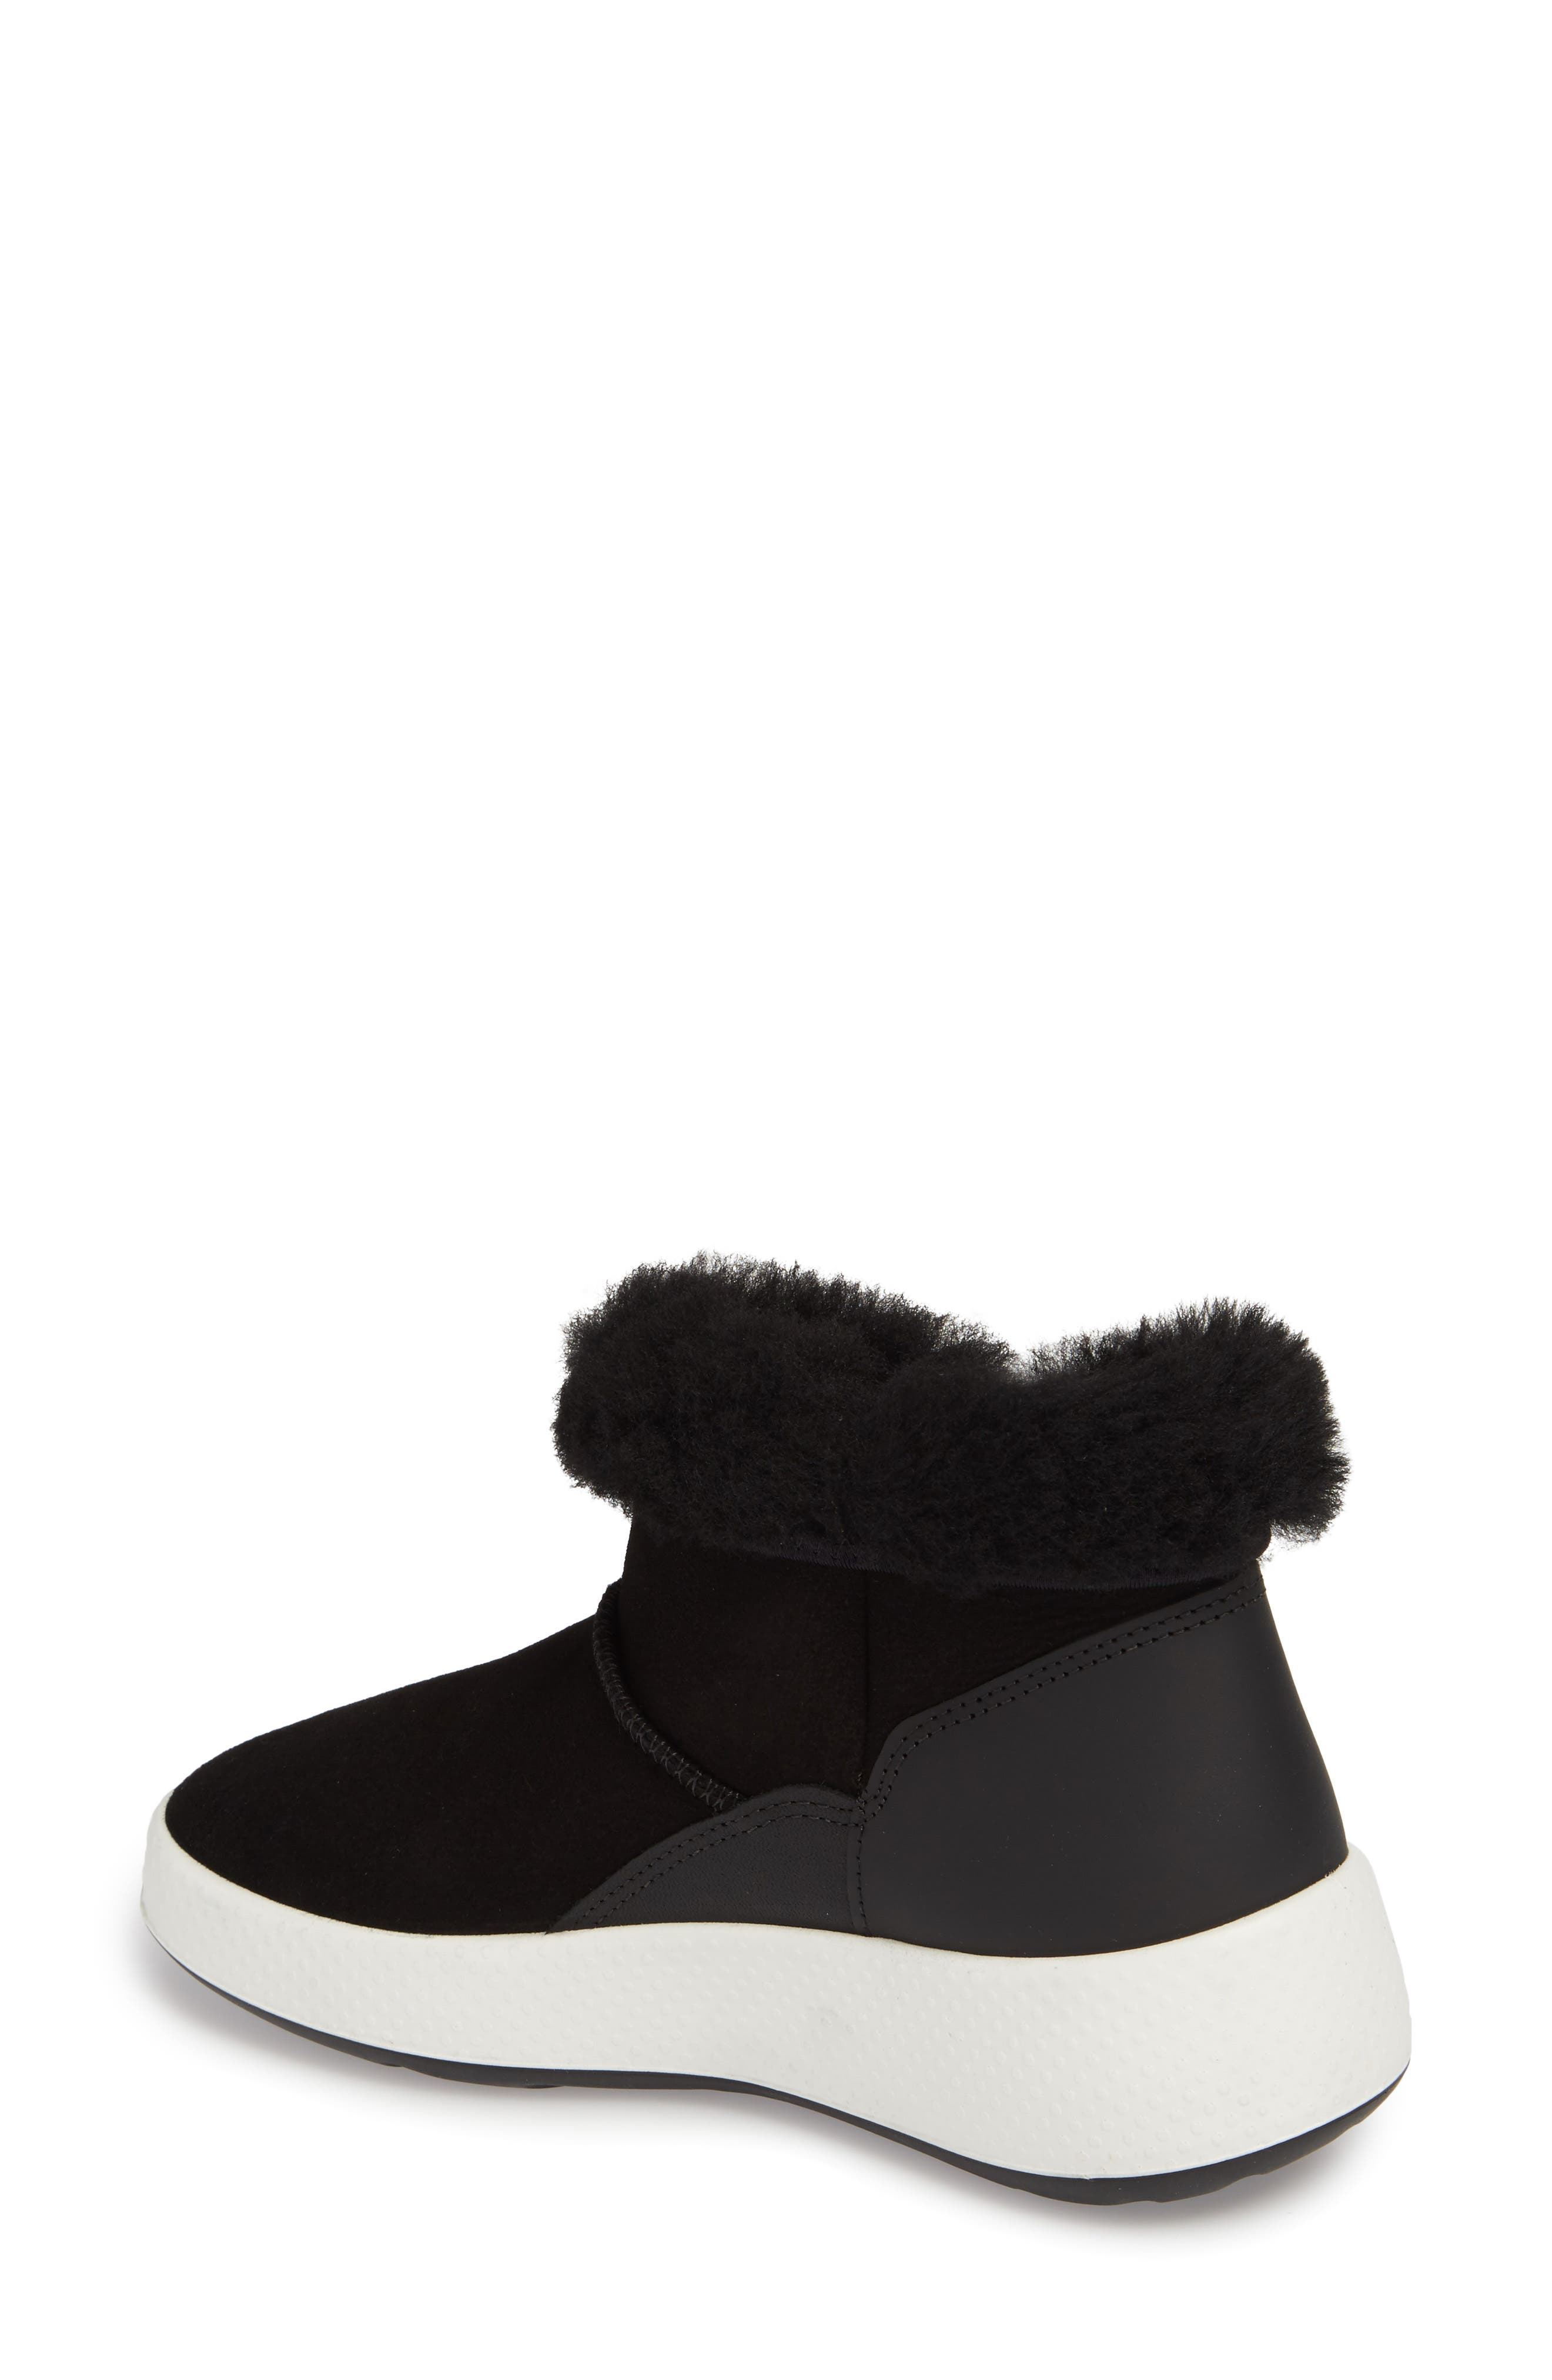 Ukiuk Genuine Shearling Boot,                             Alternate thumbnail 2, color,                             001